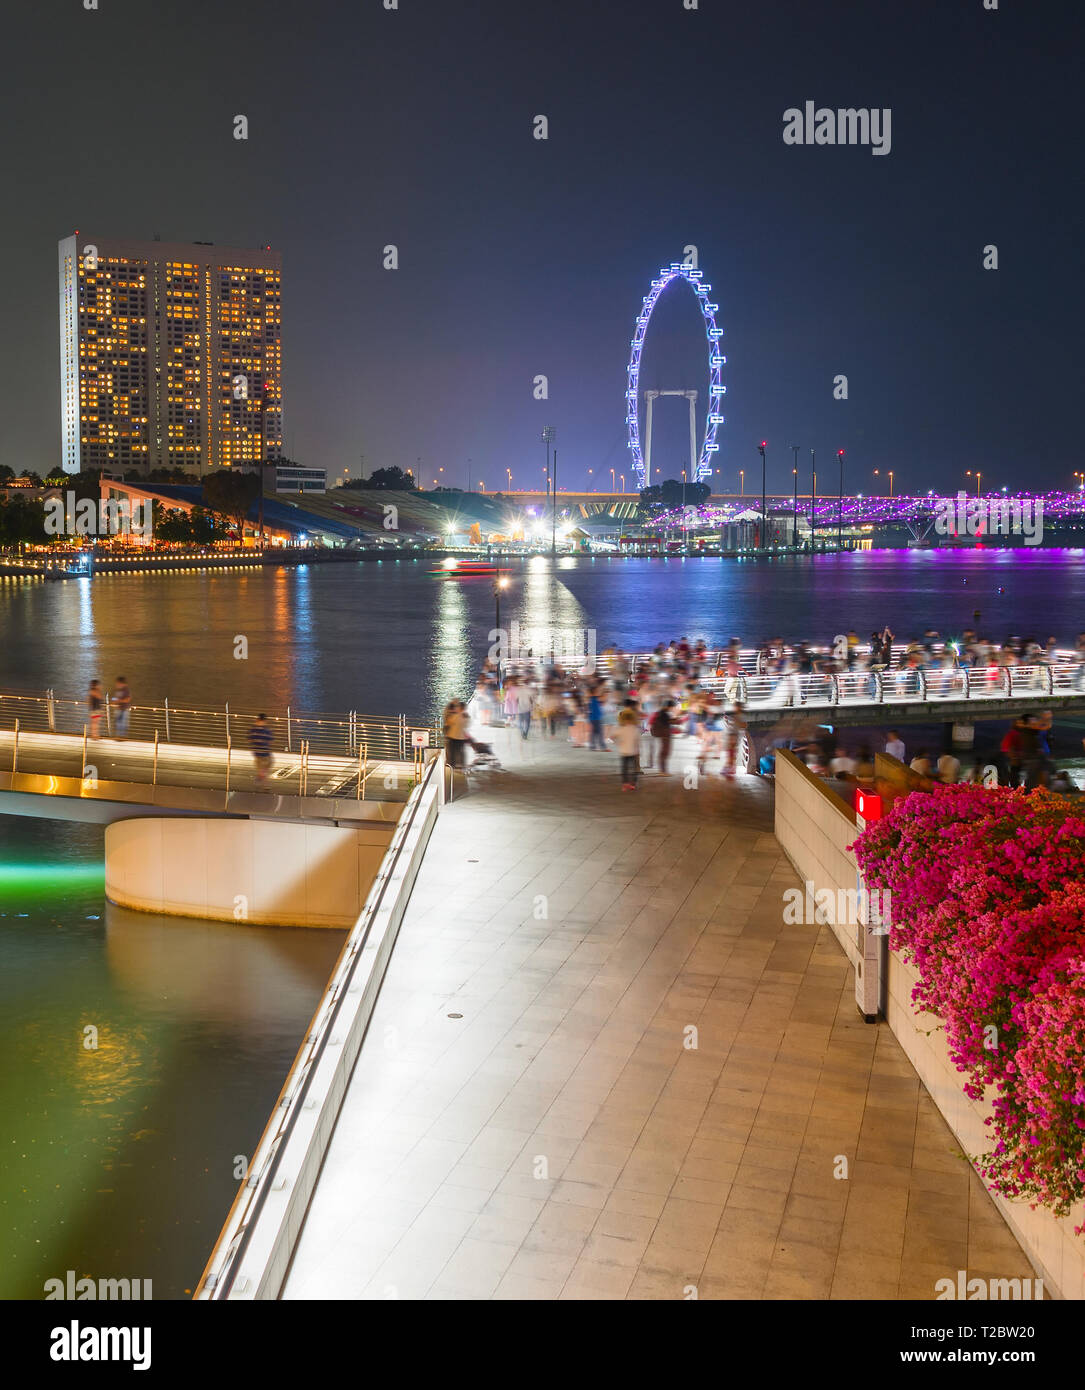 Tourists walking by Singapore embankment, illuminated Flyer, city skyline with modern architecture in background - Stock Image